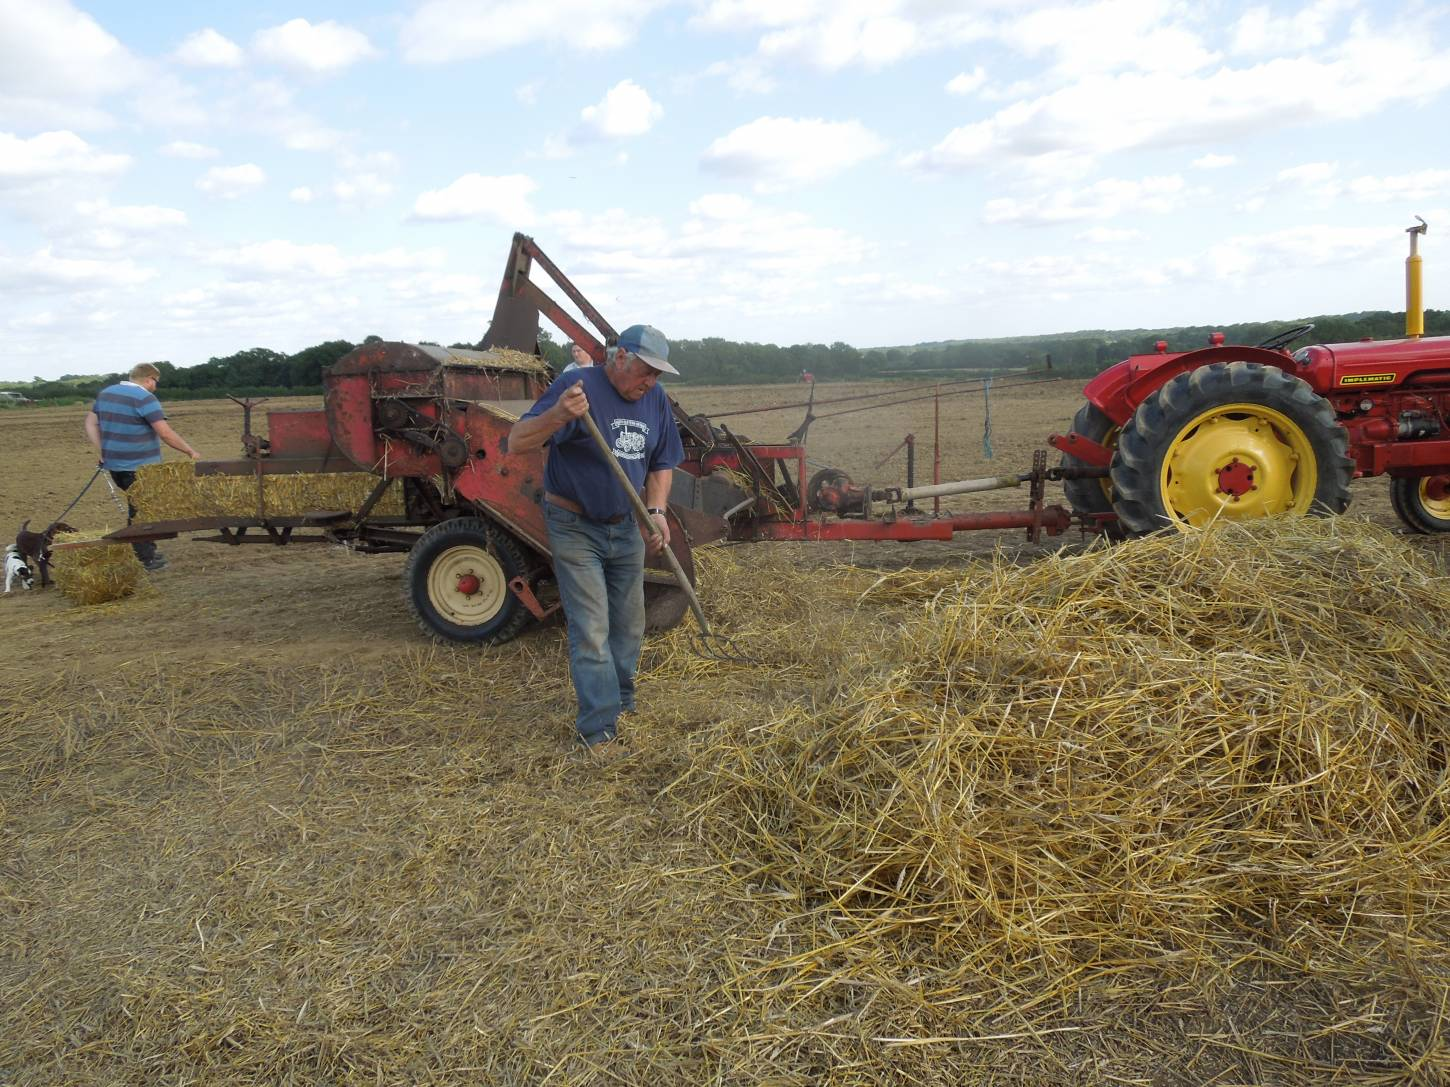 threshing Kent Old Hoary at Townings Farm vintage agricultural show - 3:50pm&nbsp;6<sup>th</sup>&nbsp;Sep.&nbsp;'15